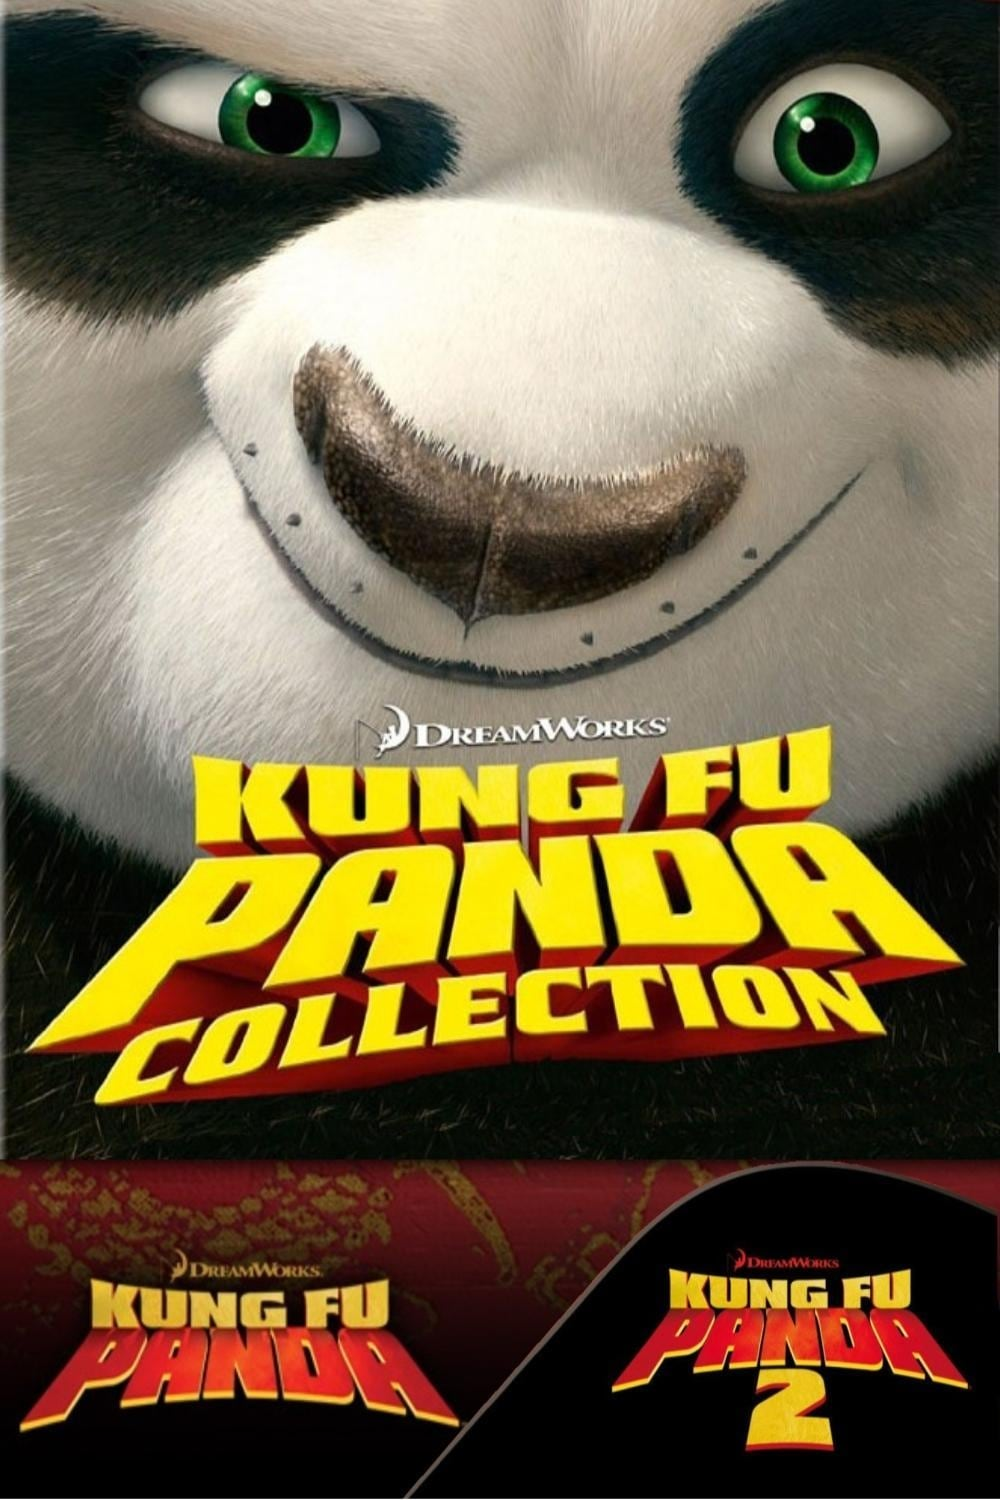 all movies from kung fu panda collection saga are on